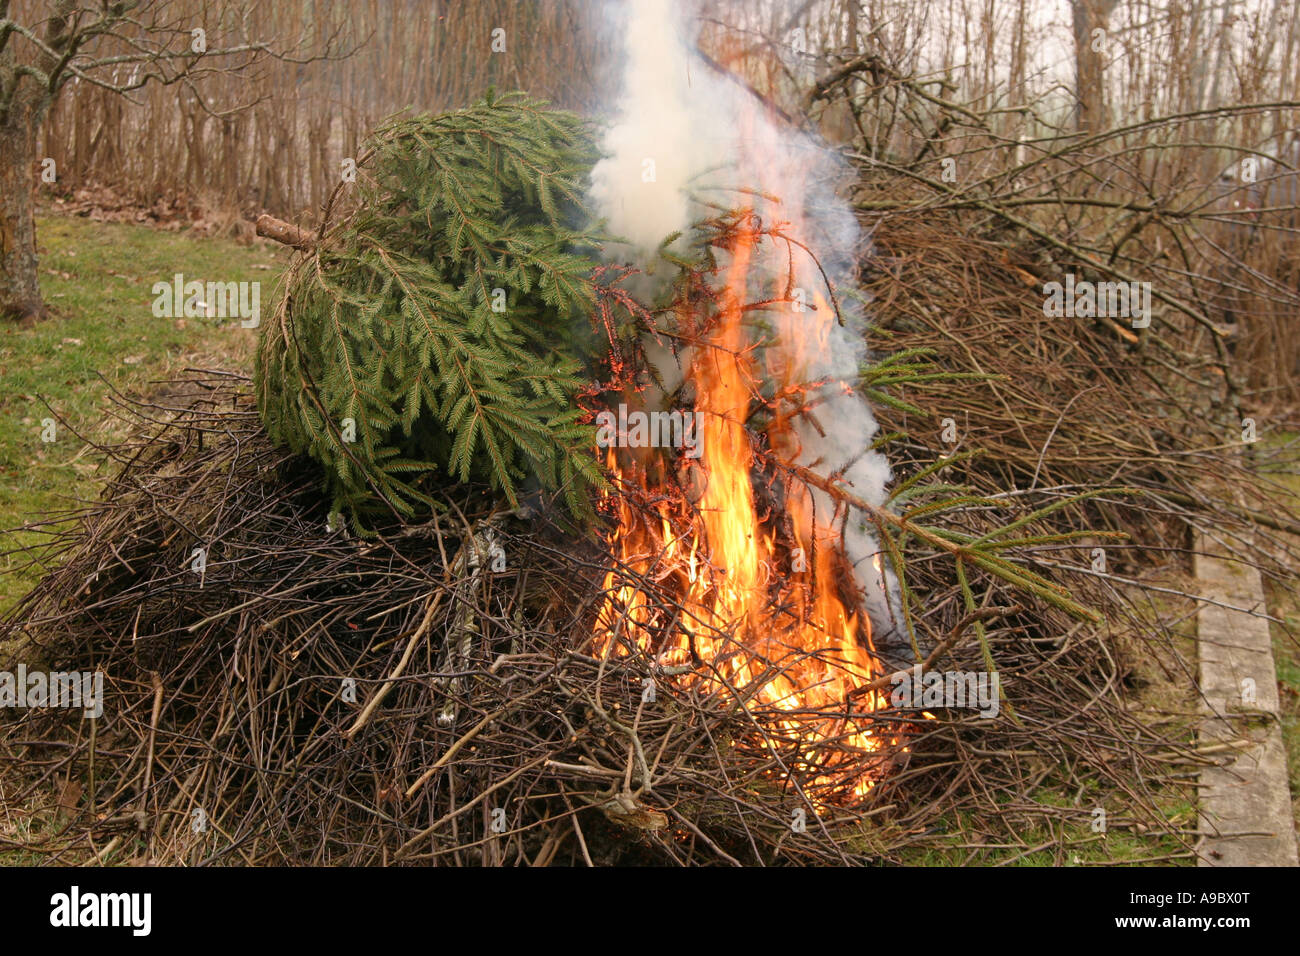 burning the old christmas tree along with some twigs stock image - What To Do With Old Christmas Trees